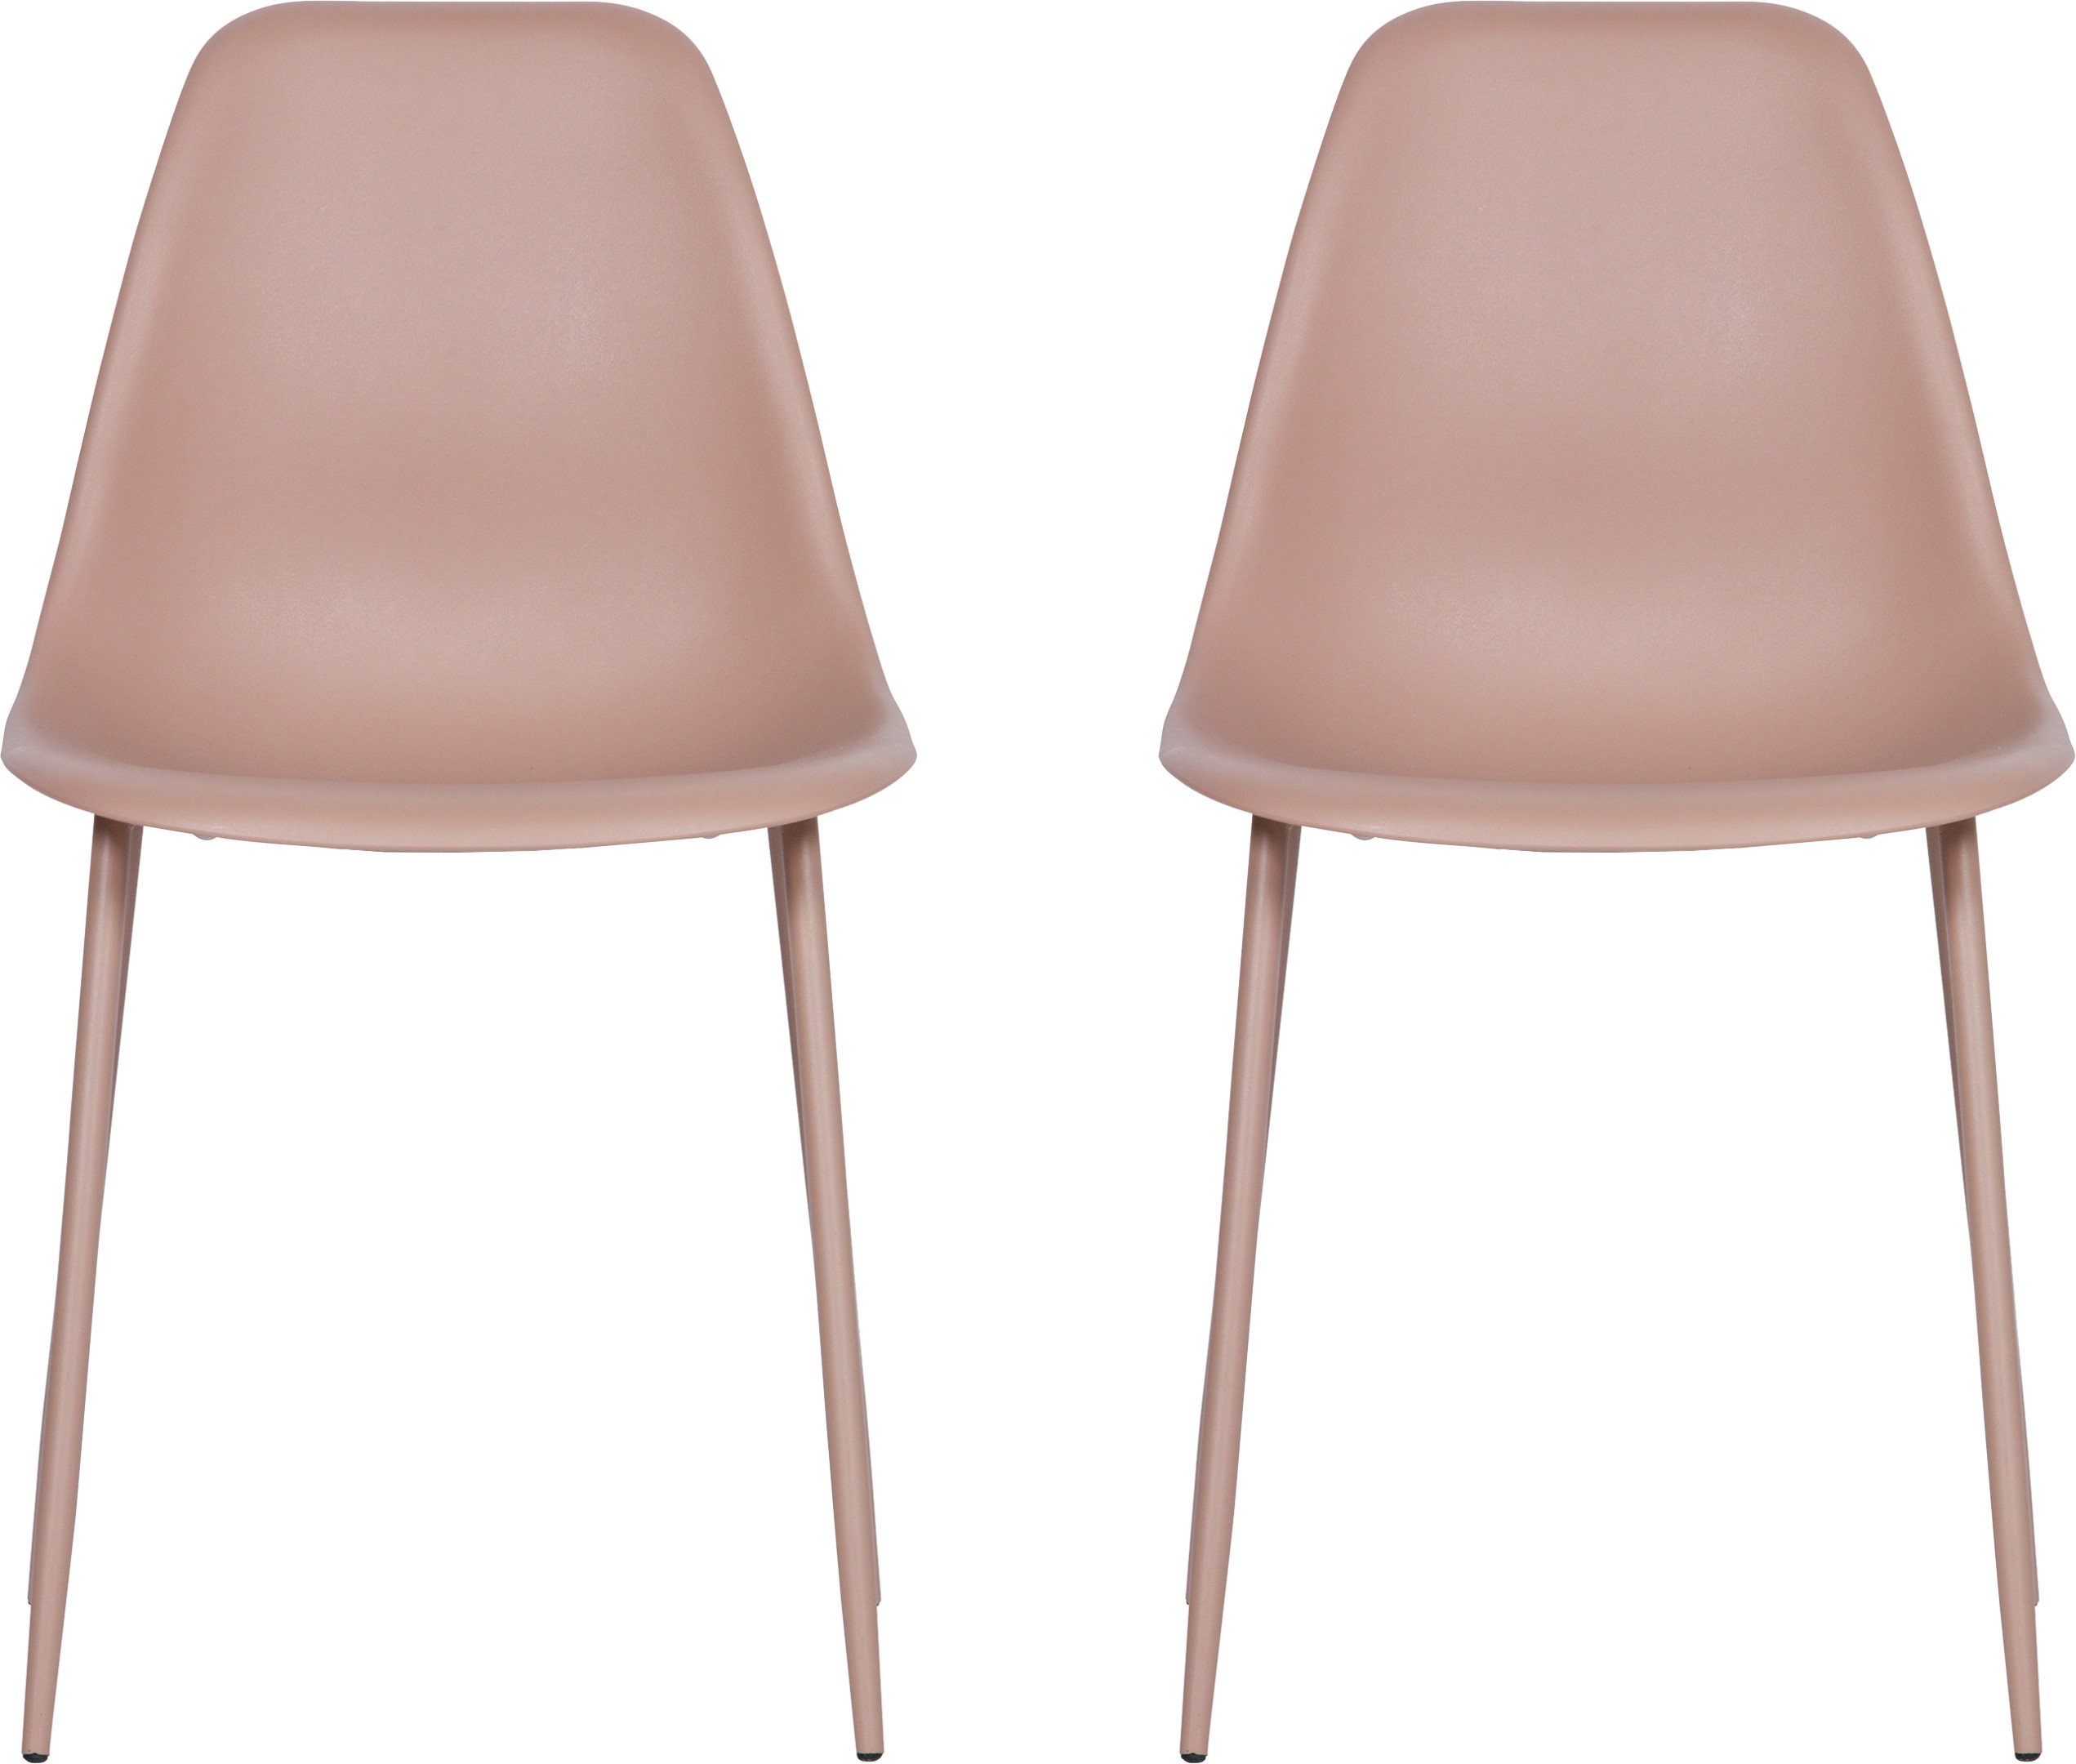 Pair of Lexi Dining Chairs Pink, Woood